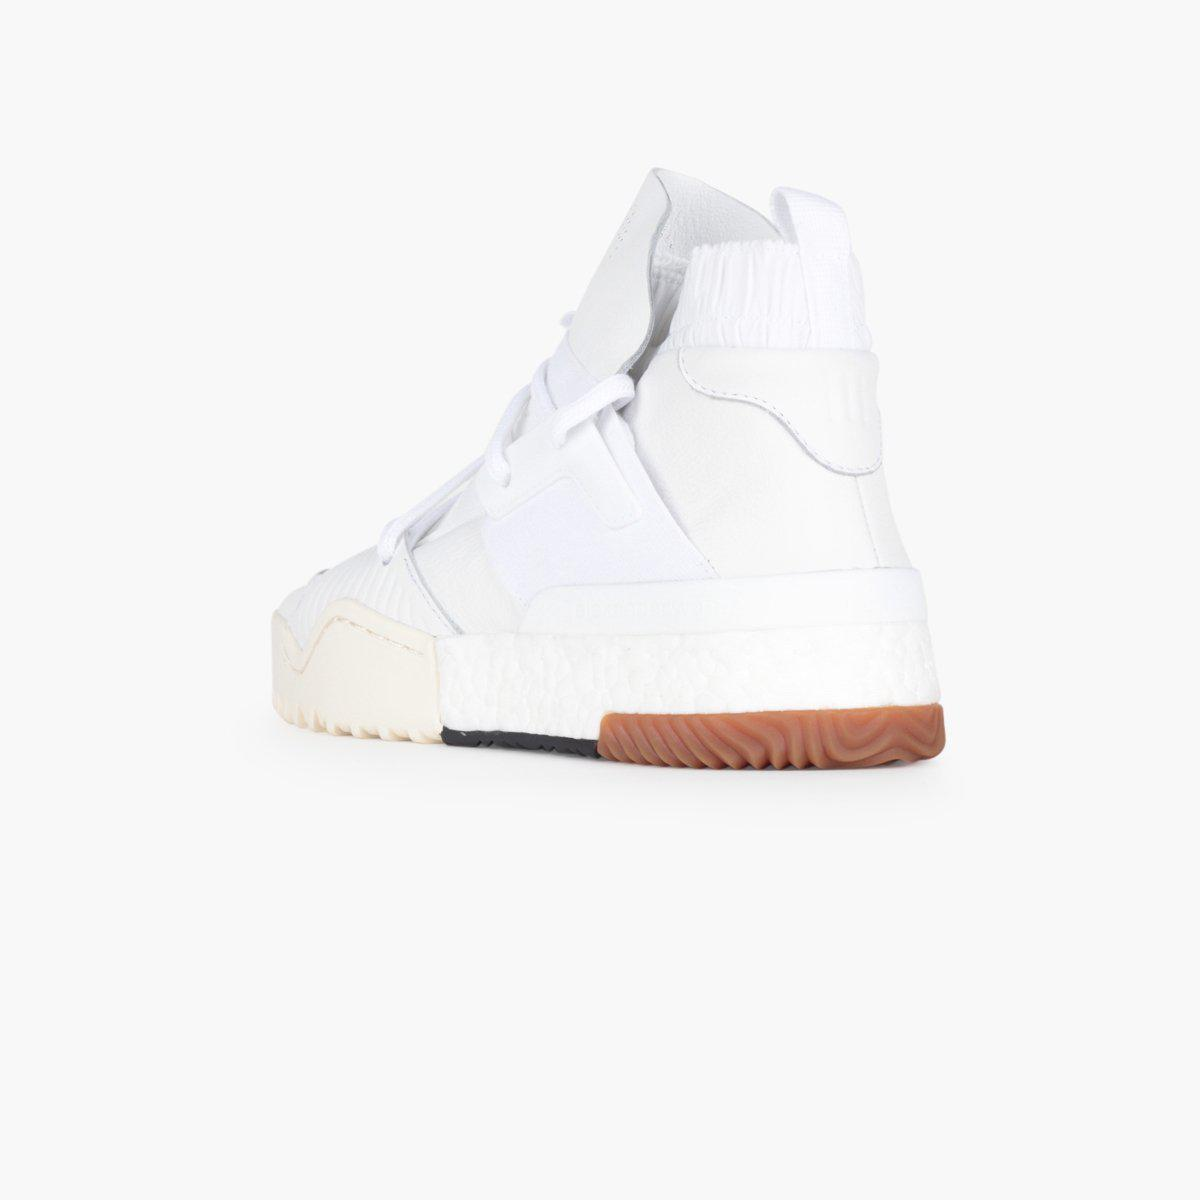 58d7af7ef93cc ... Adidas Originals By Alexander Wang Aw Bball Mid Boost for Men -. View  fullscreen